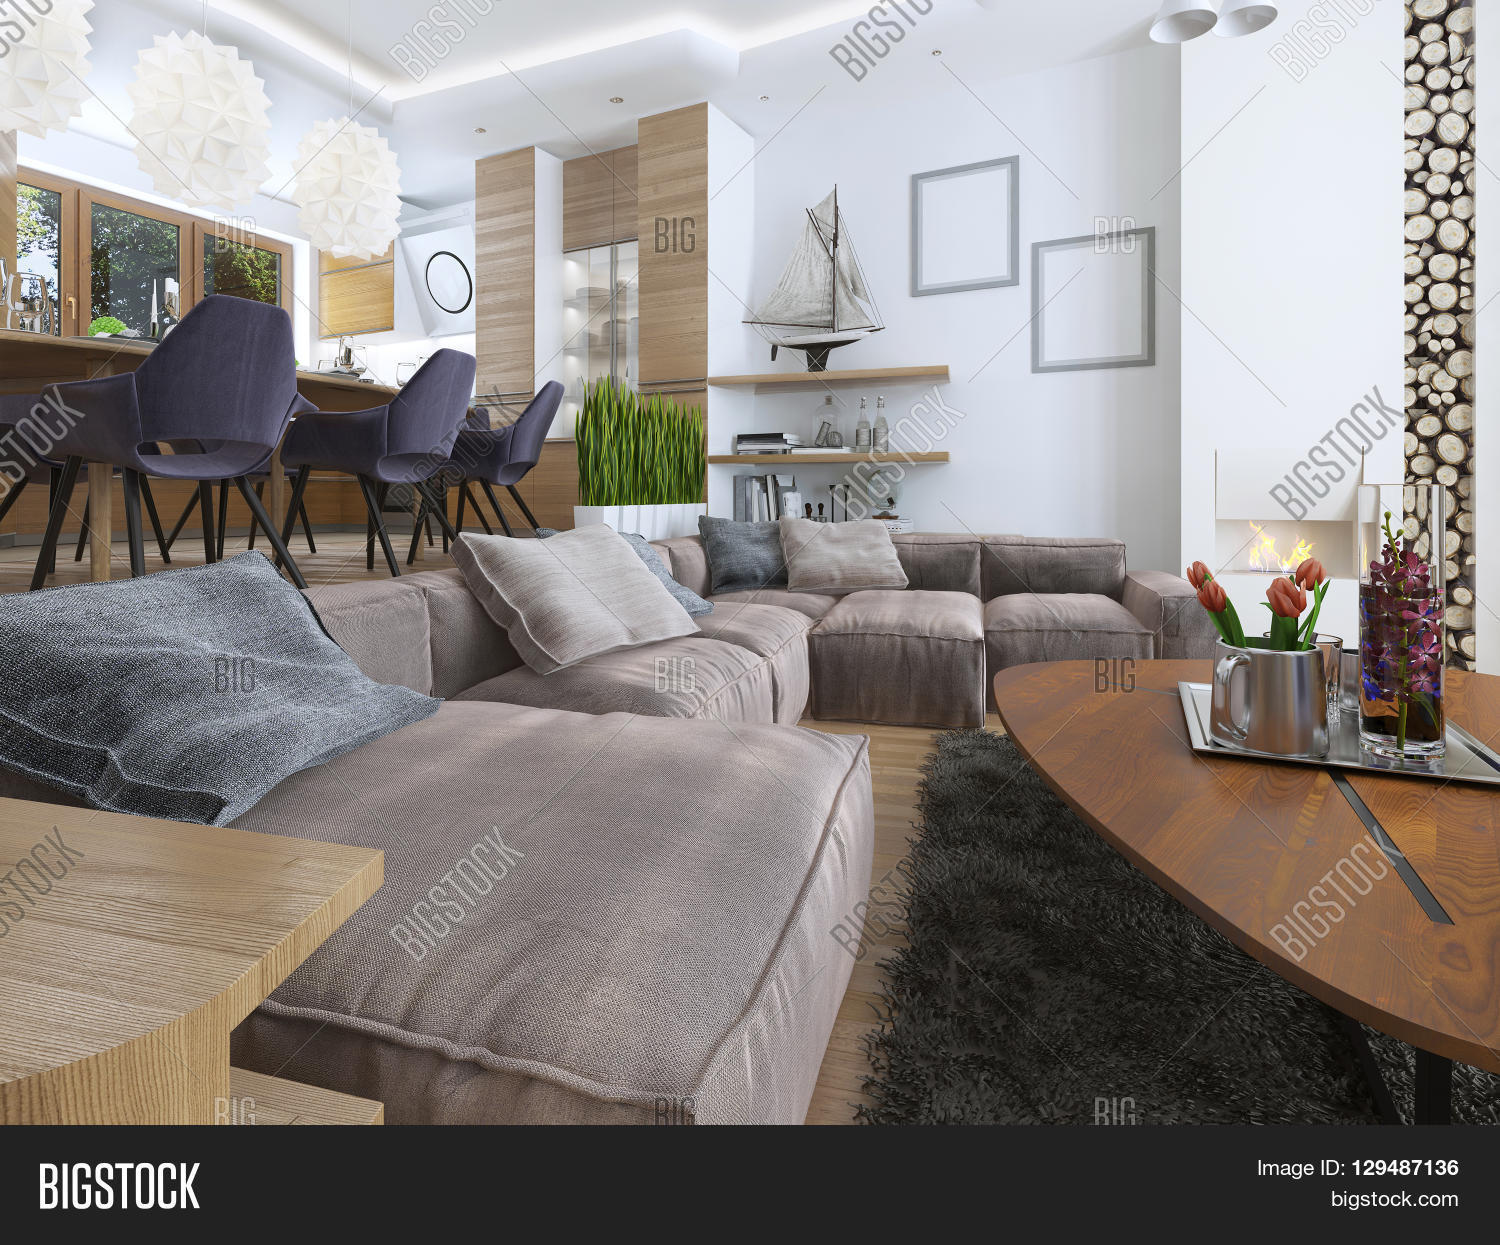 Modern Living Room Image & Photo (Free Trial)  Bigstock